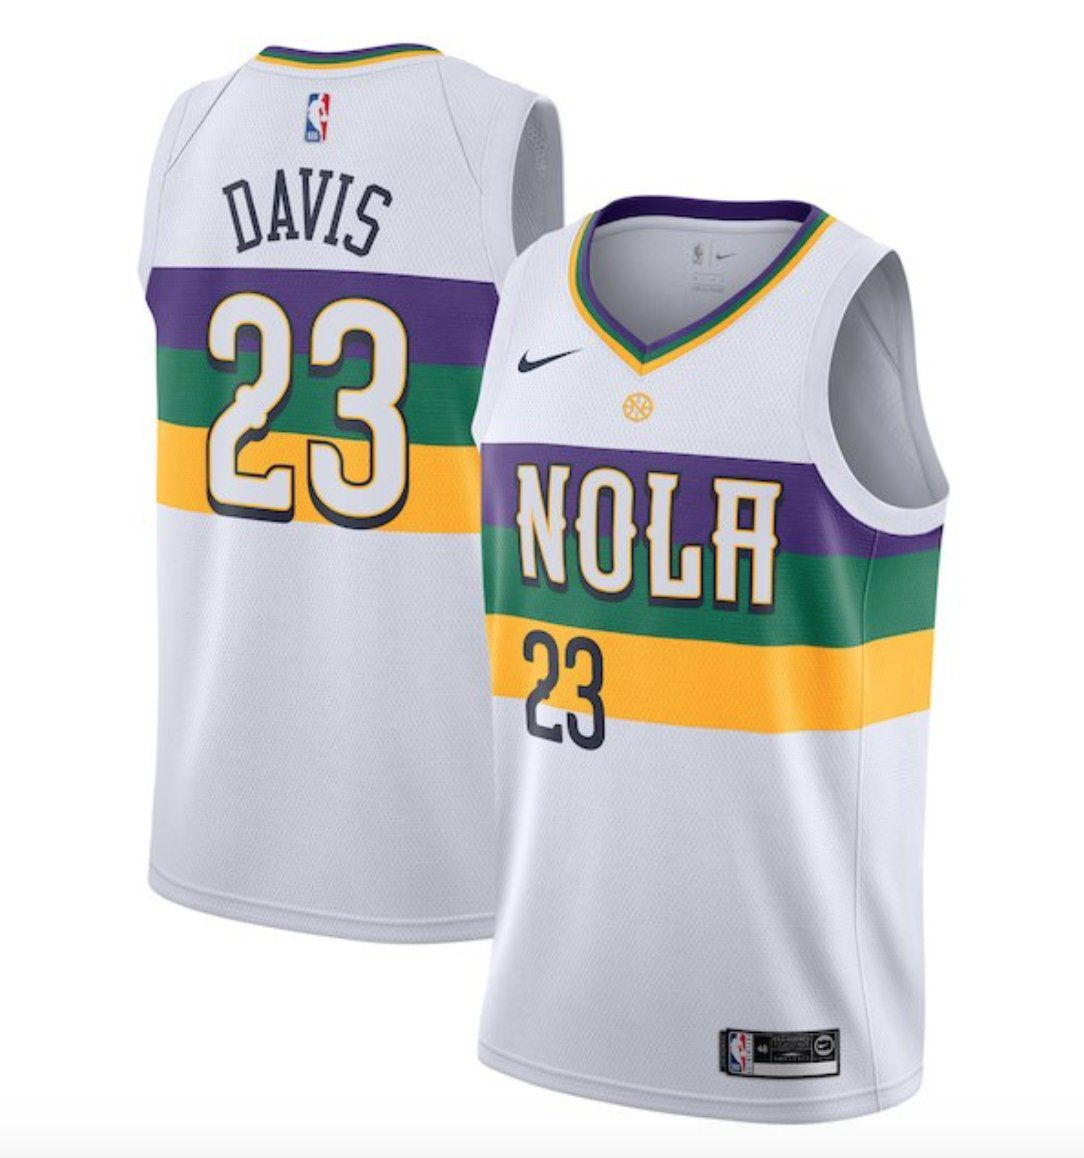 new arrival 31e02 38ce4 Every NBA City Edition jersey, ranked - SBNation.com